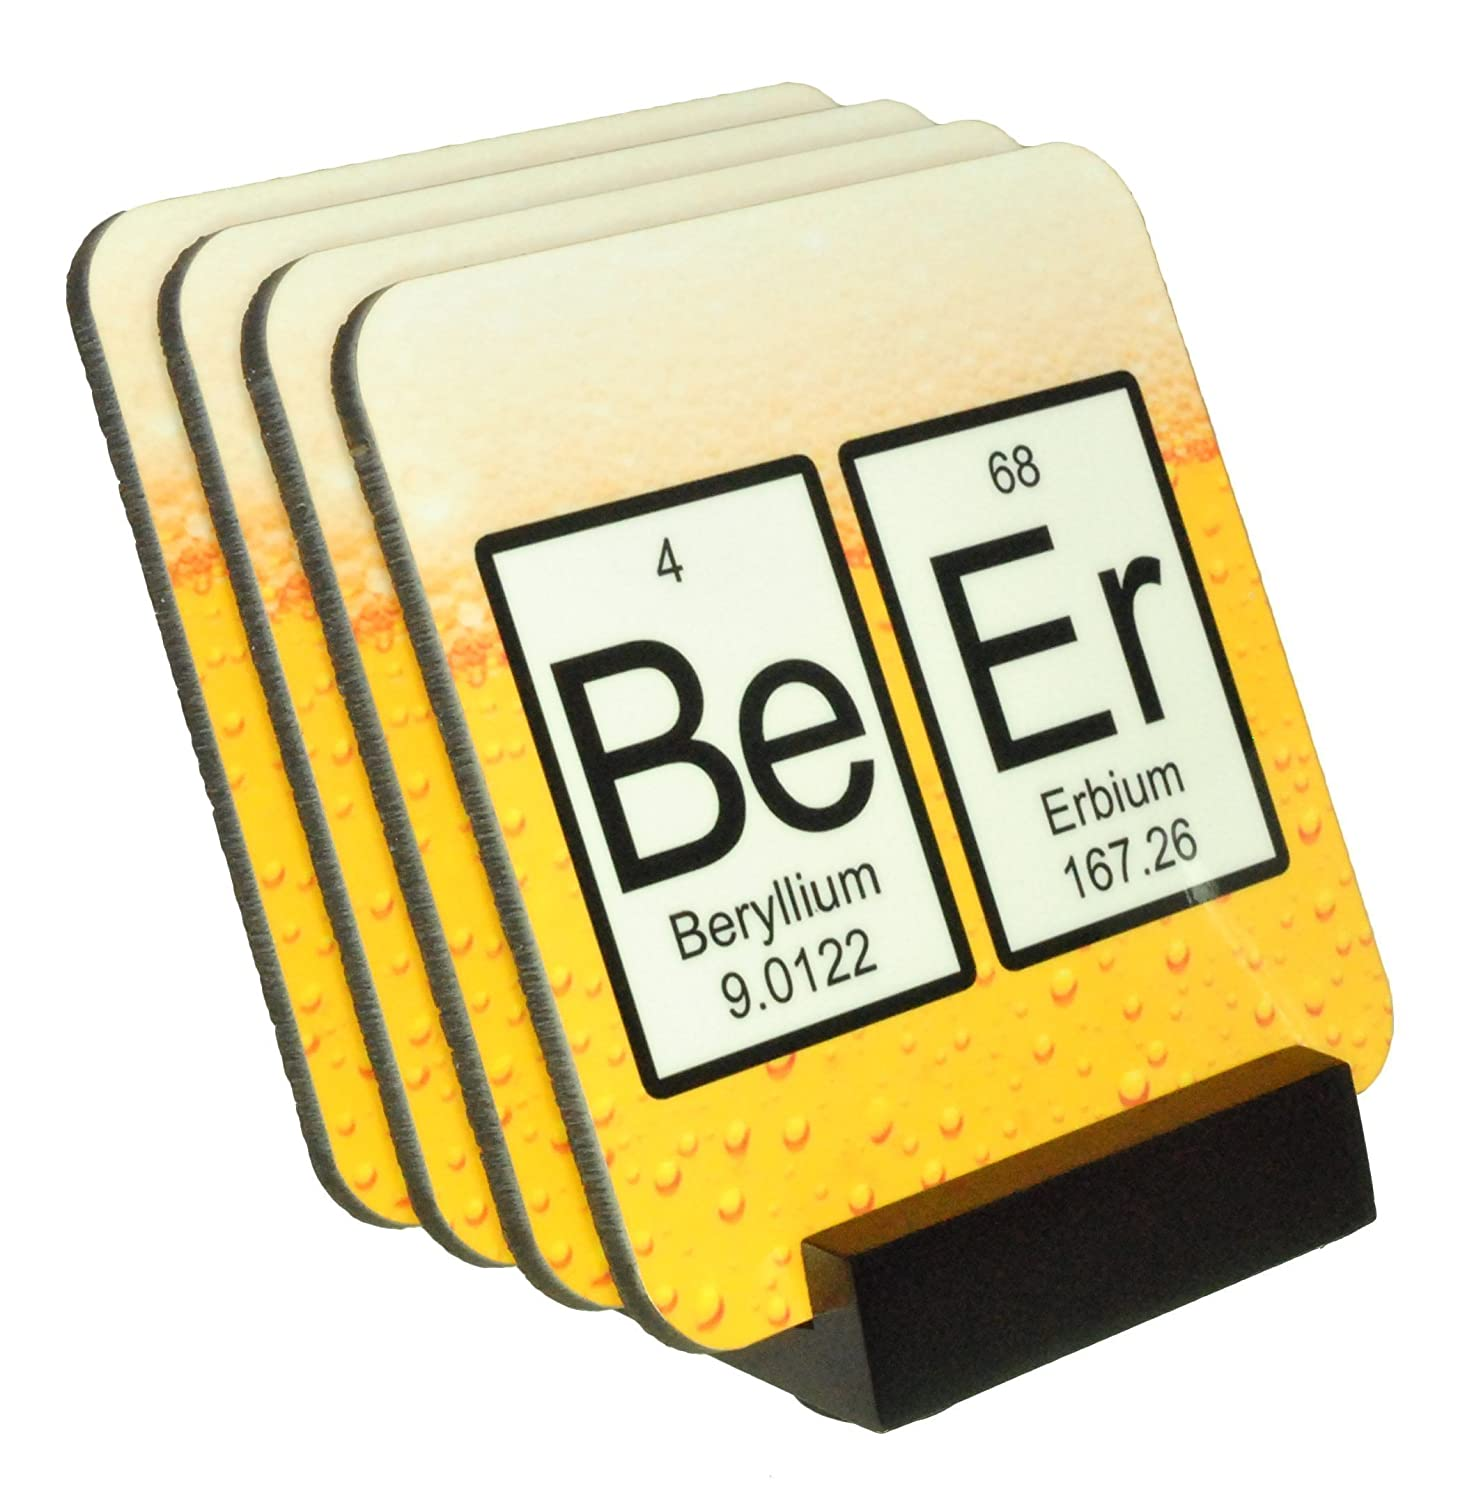 Amazon Com Beer Periodic Table Of Elements Coaster Set 4 Piece Cork Back Set Wood Holder Included Handmade